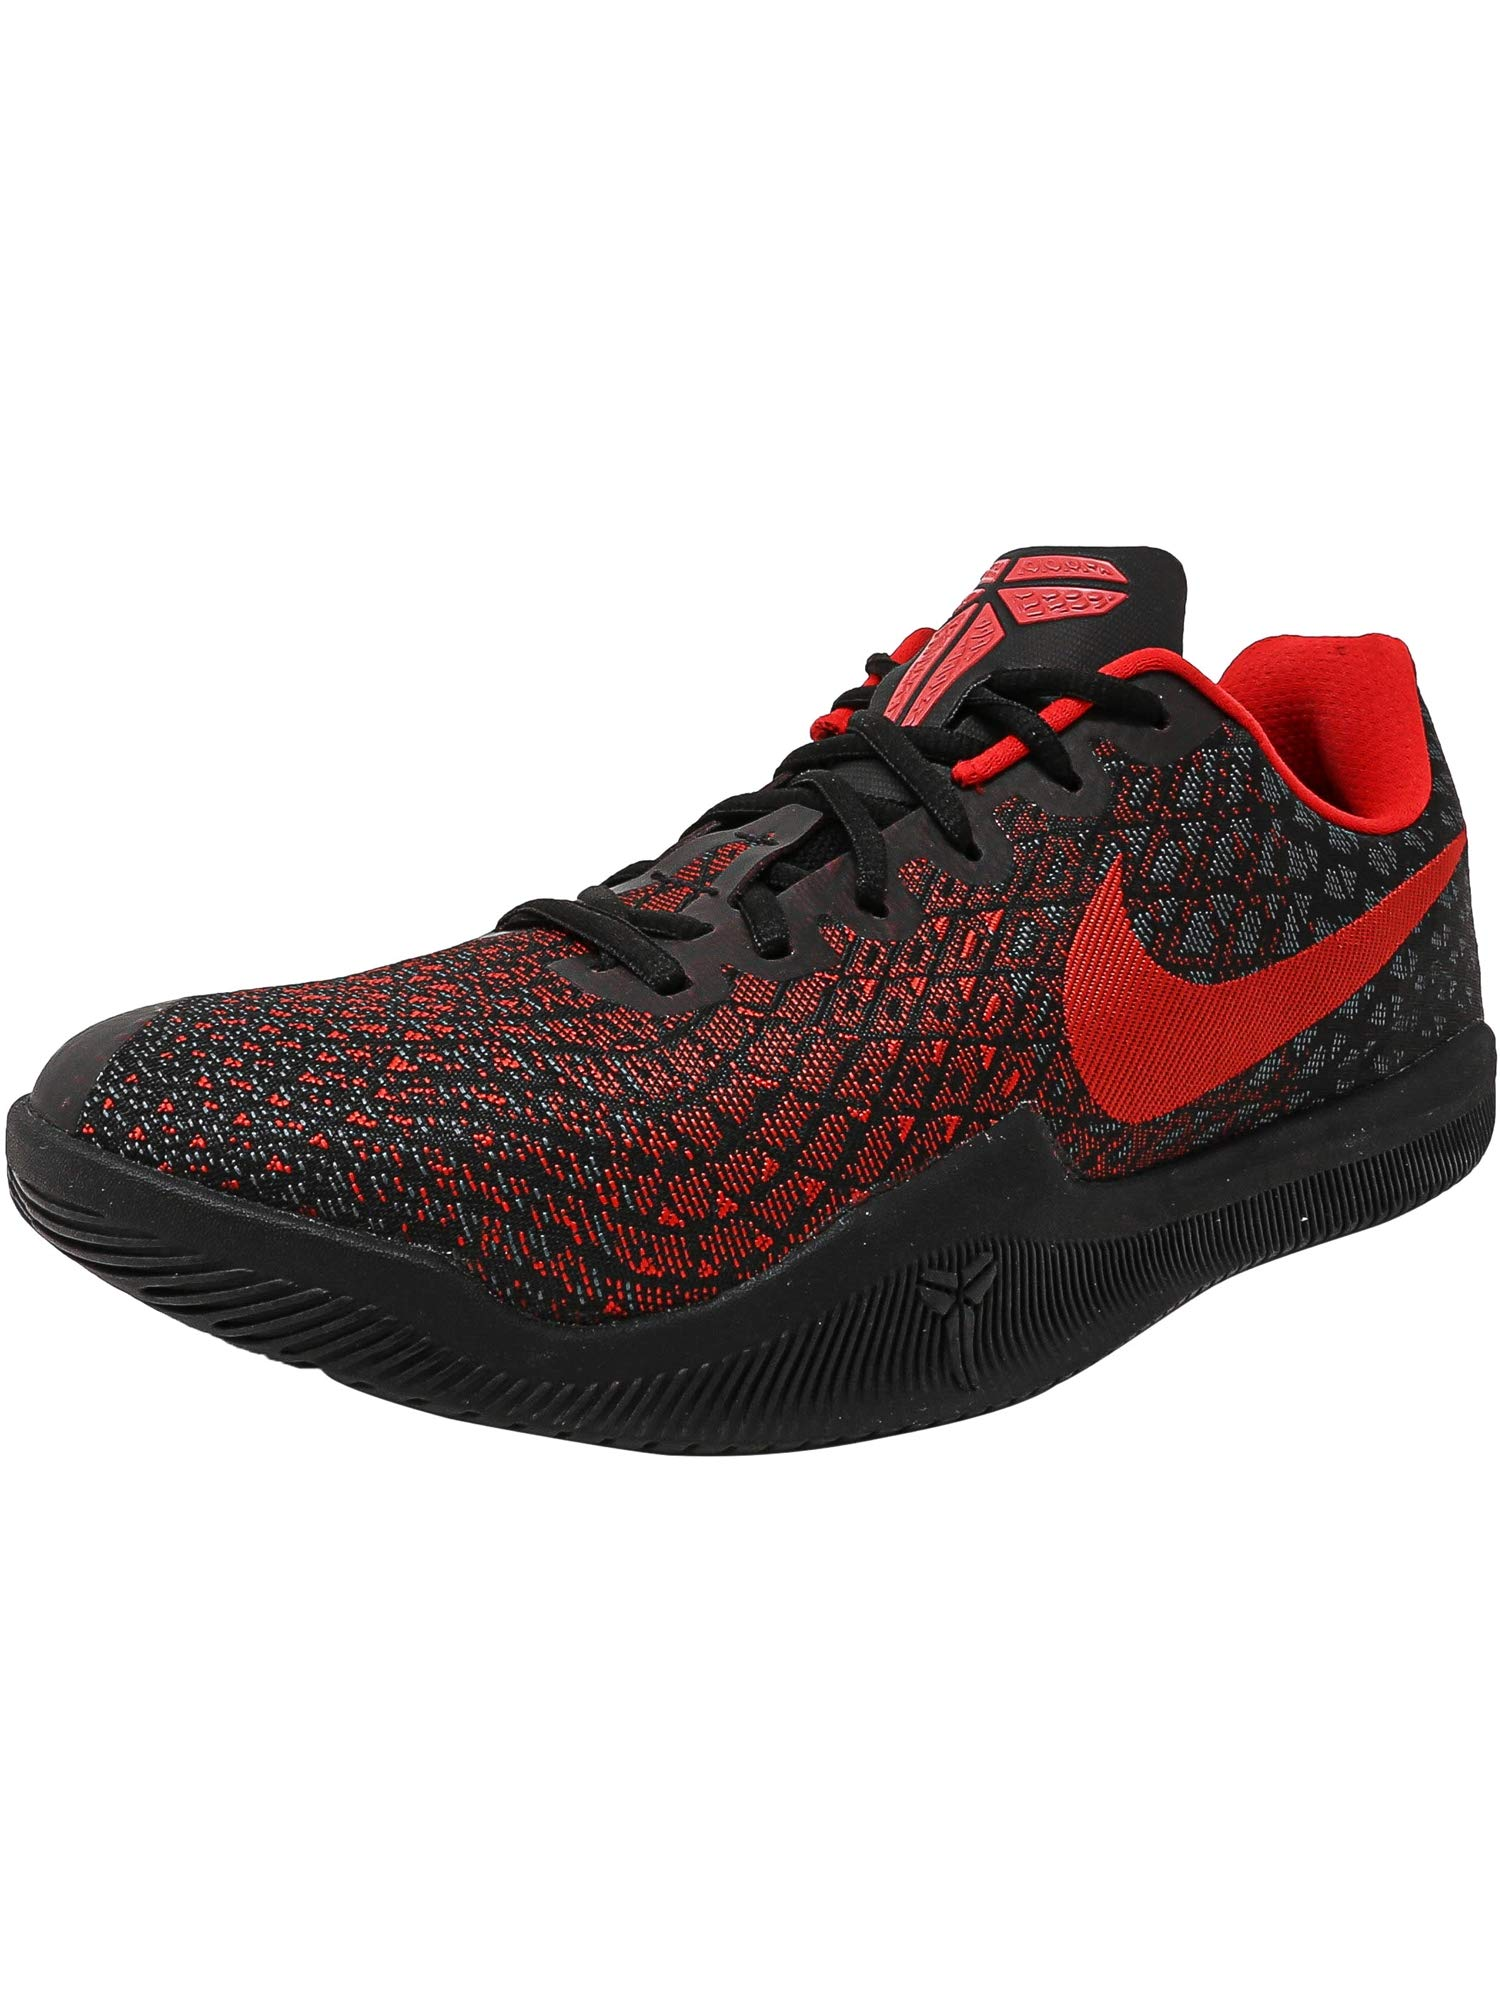 af5e8cad406ba3 Galleon - Nike Men s Kobe Mamba Instinct Basketball Shoes (12